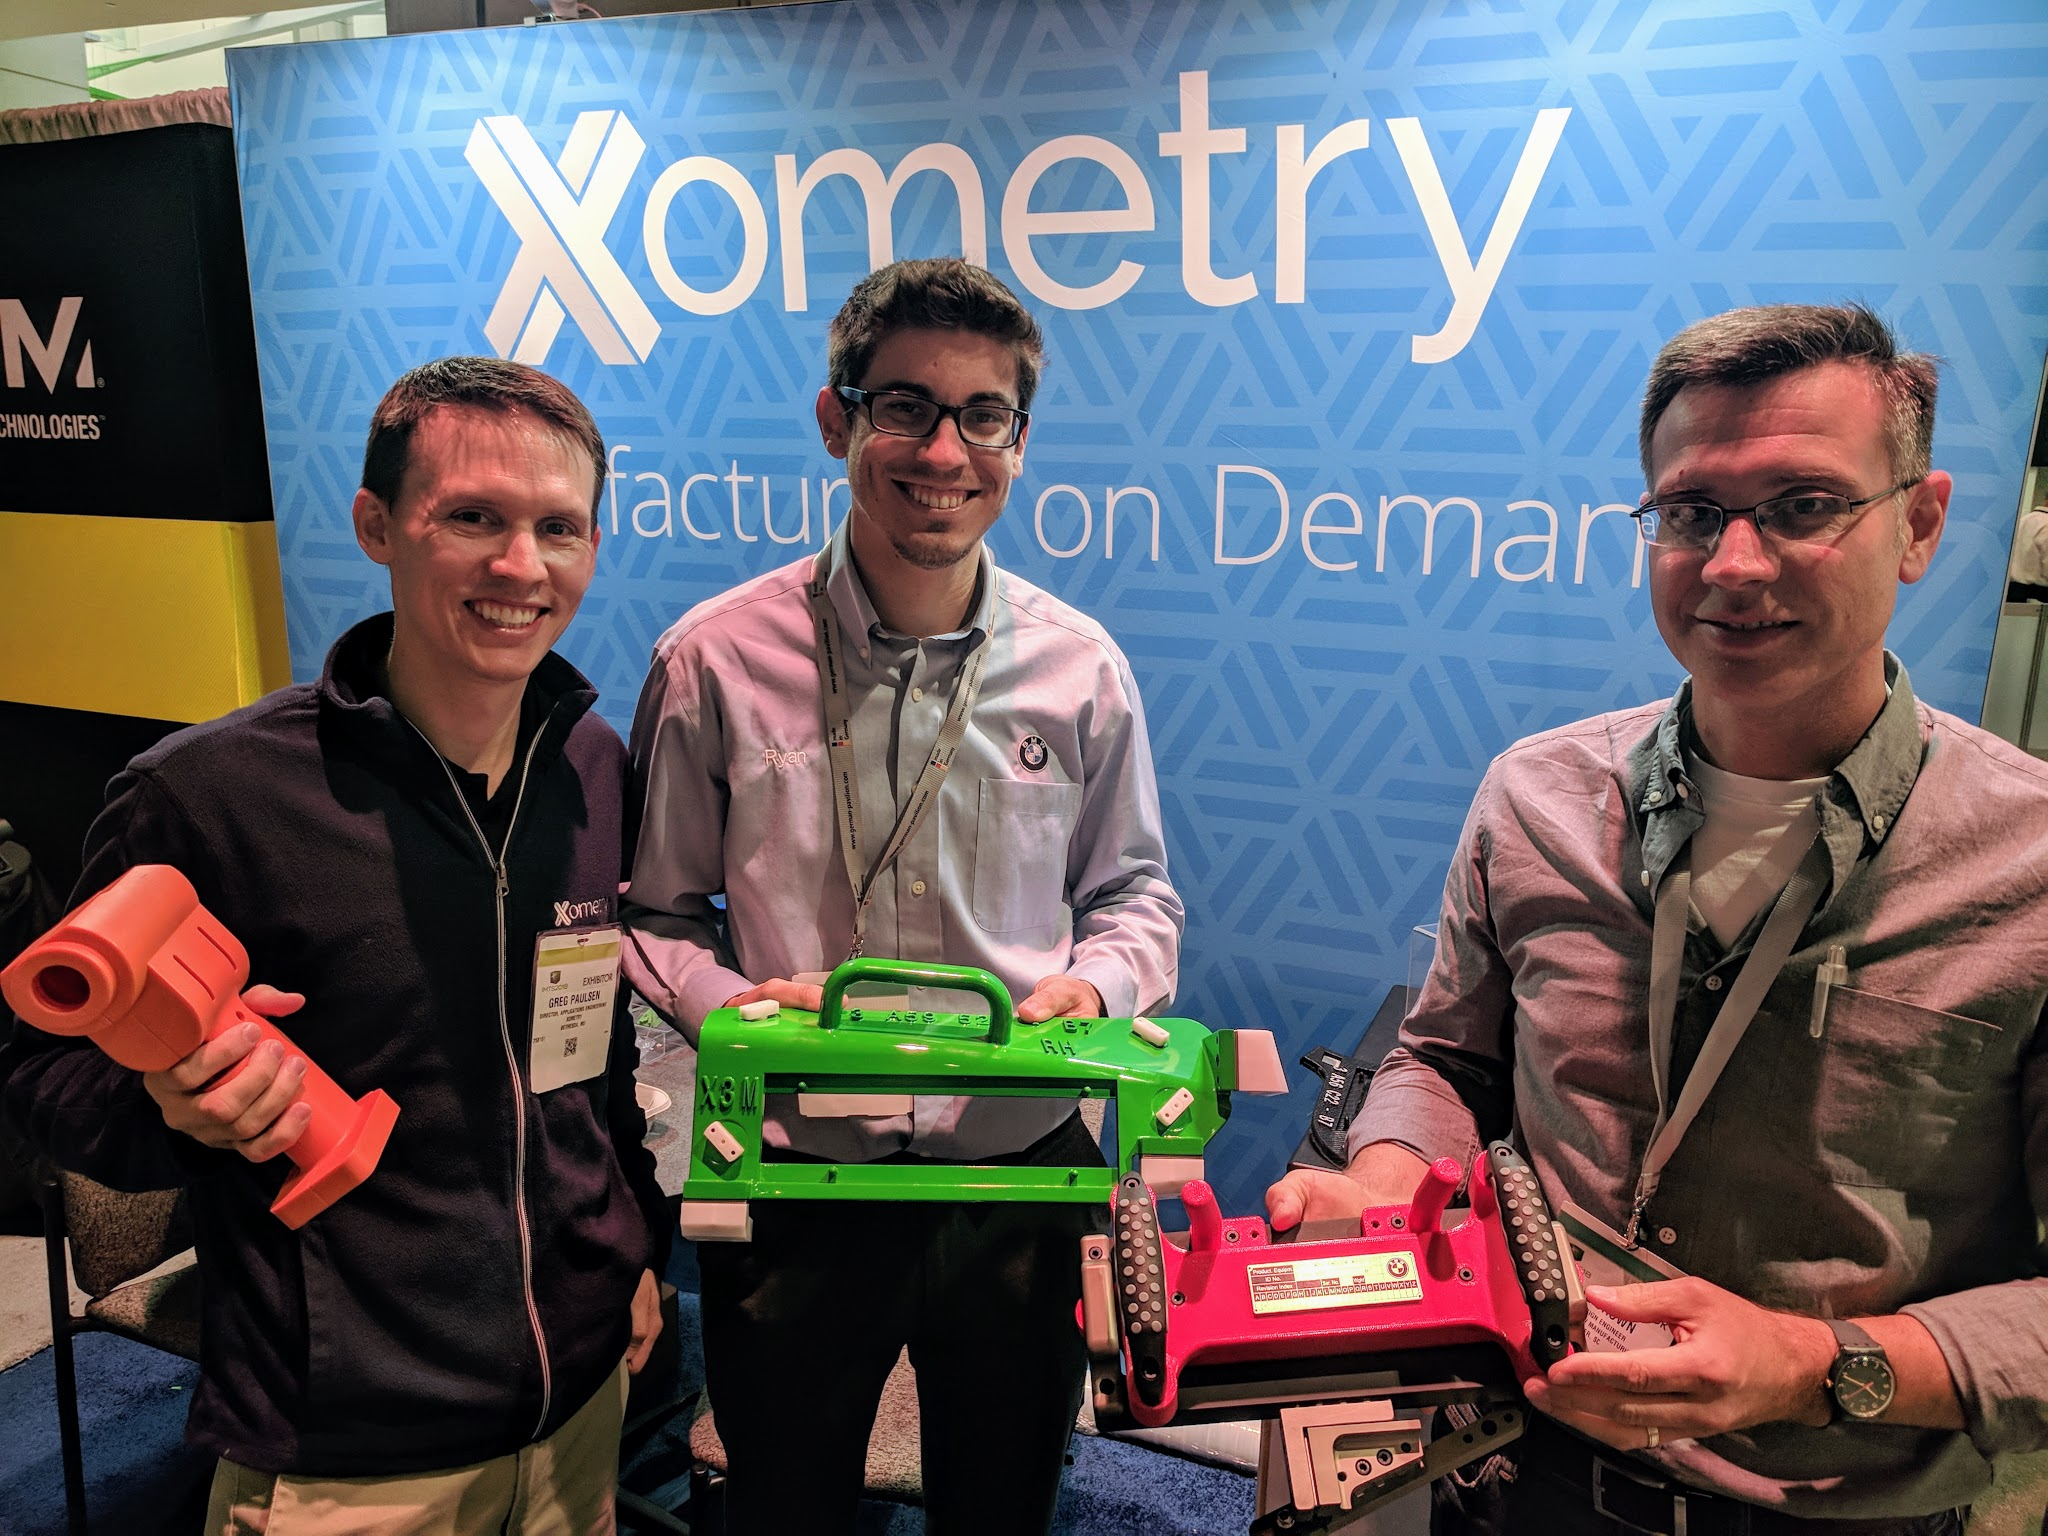 On-demand manufacturing service Xometry raises $50 million in equity  funding - 3D Printing Industry